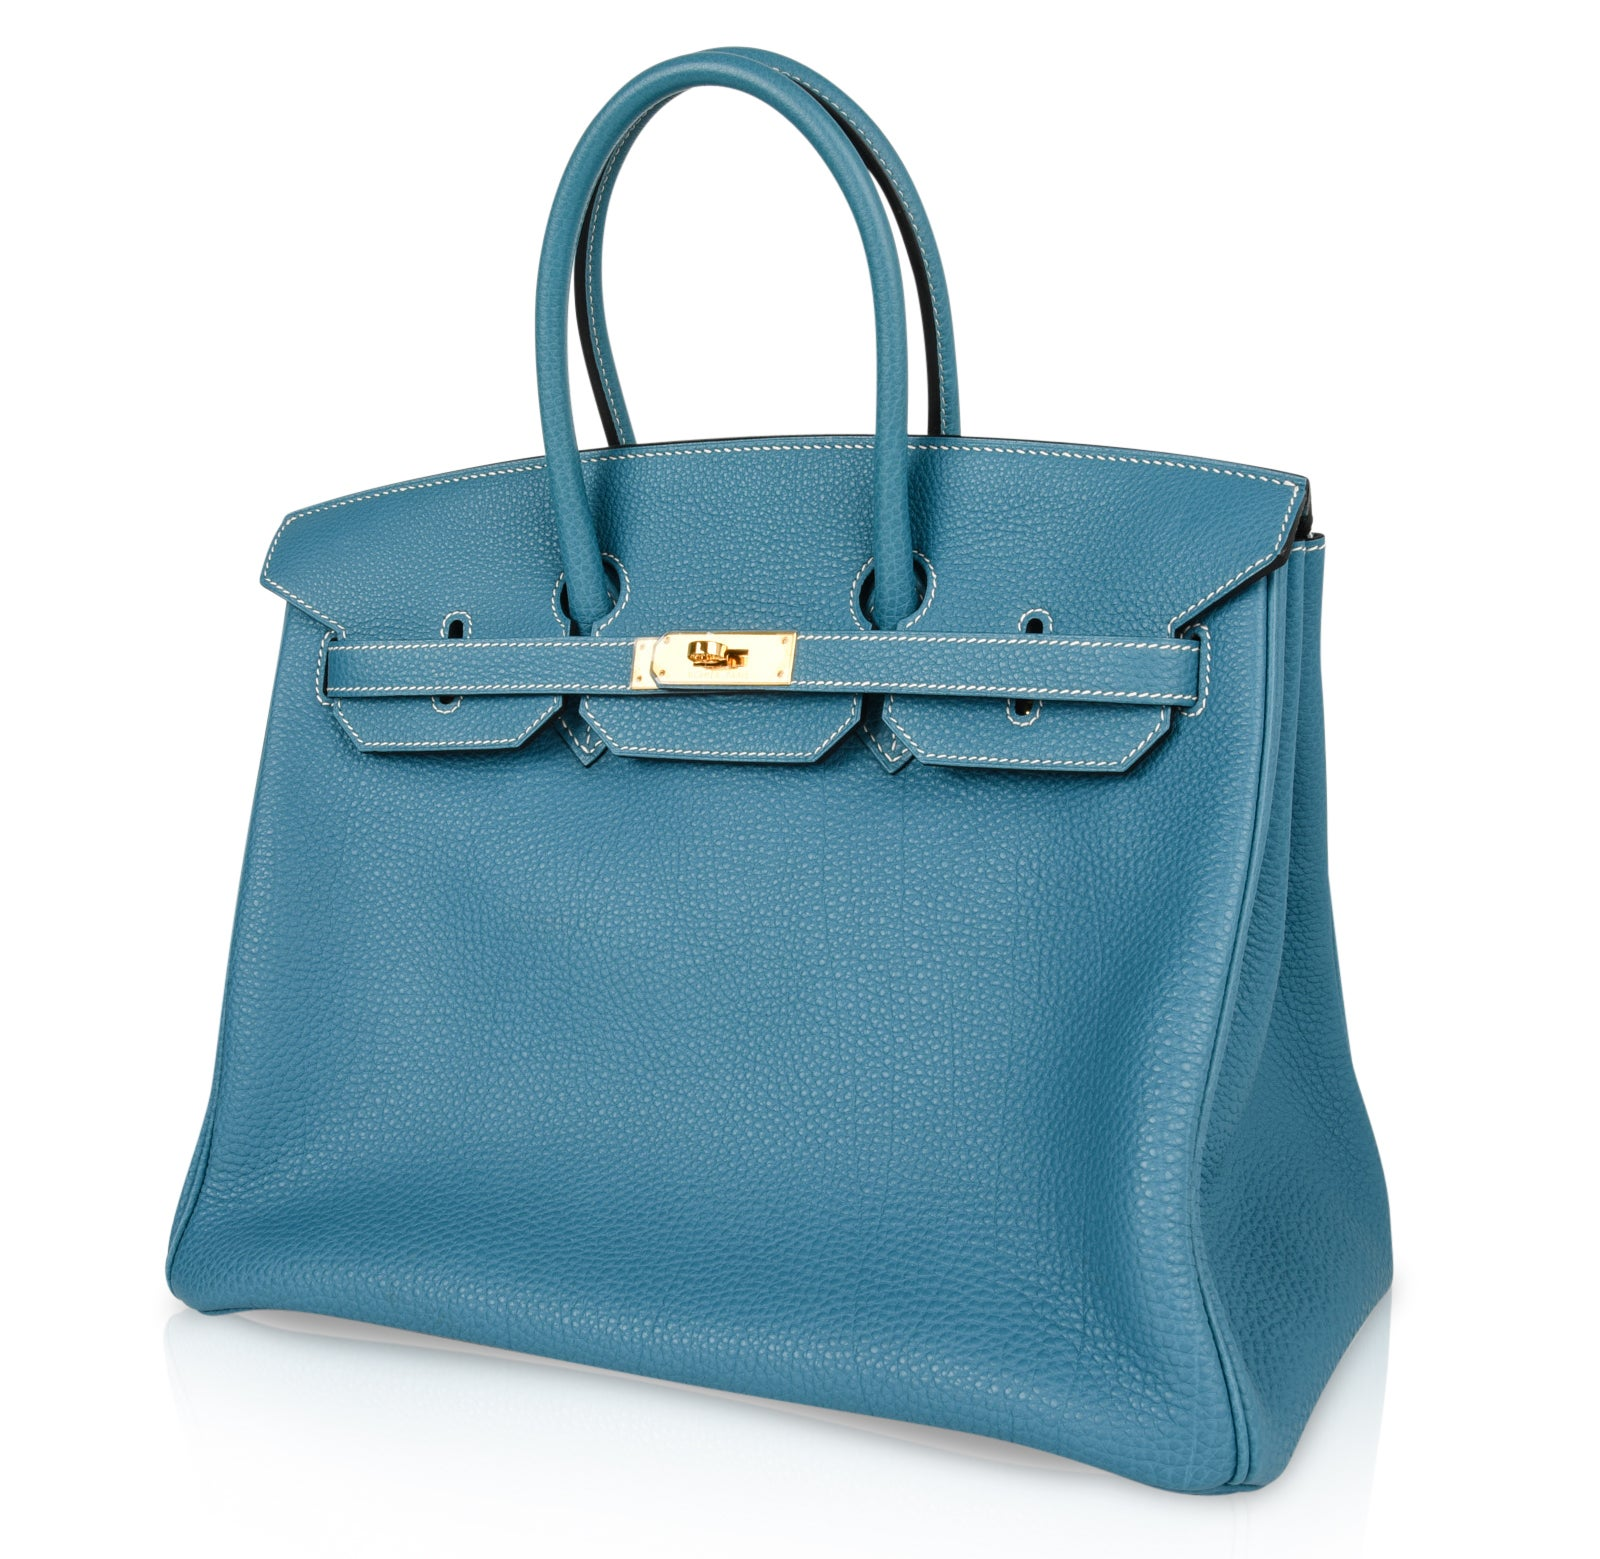 ad035d2858 Hermes Birkin 35 Bag Iconic Blue Jean Togo Gold Hardware Rare For Sale at  1stdibs